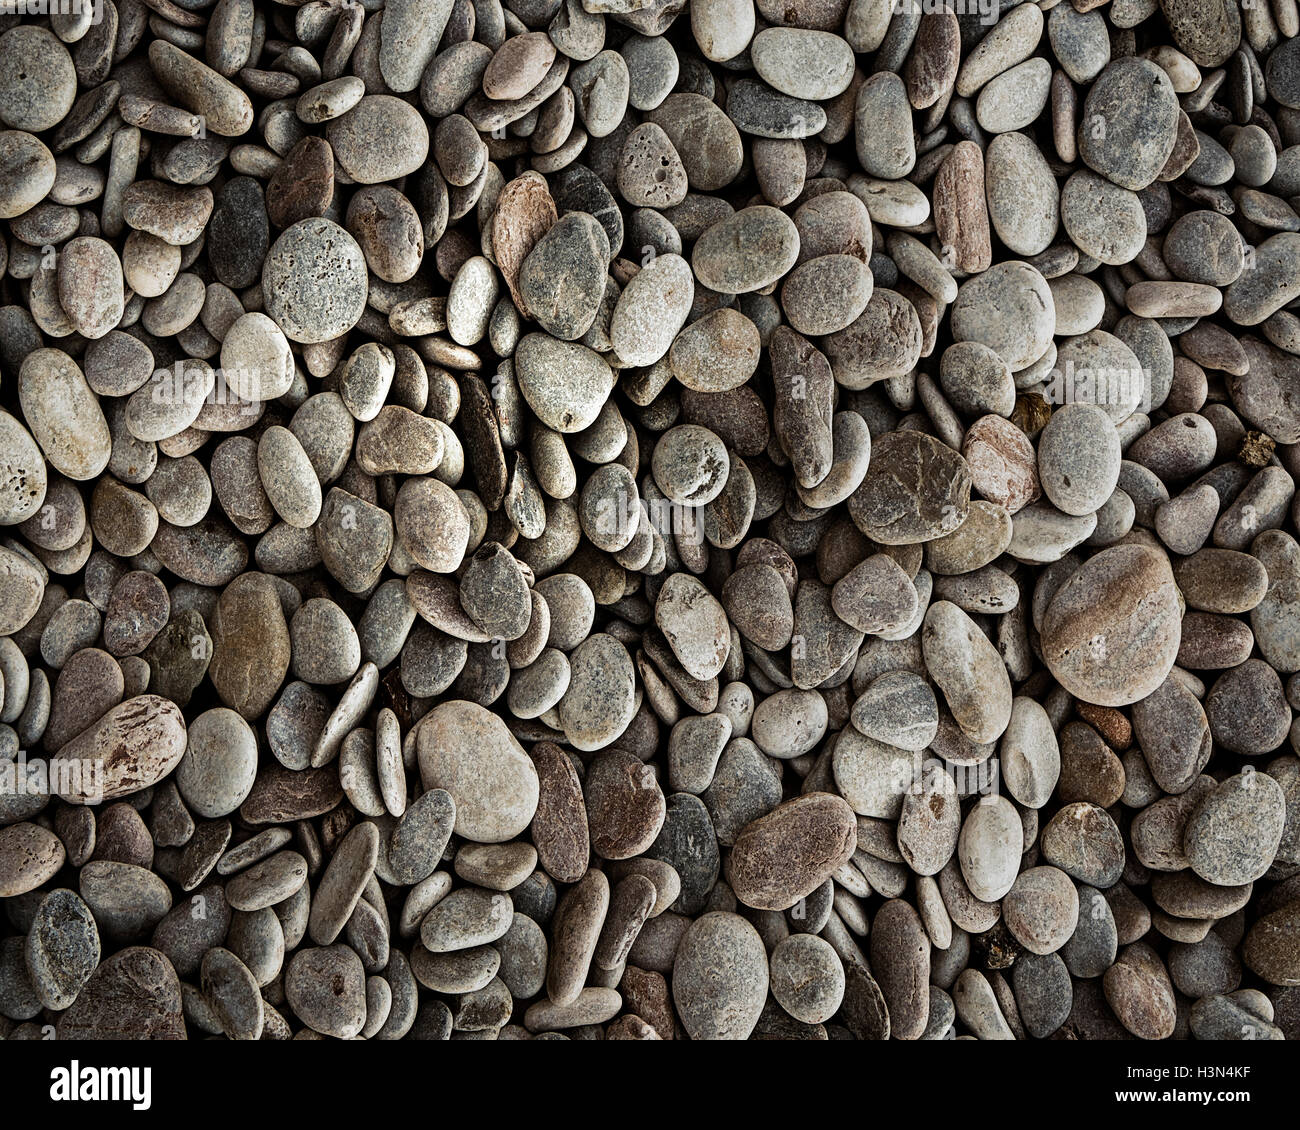 GIFT WRAP DESIGN: Pebbles - Stock Image